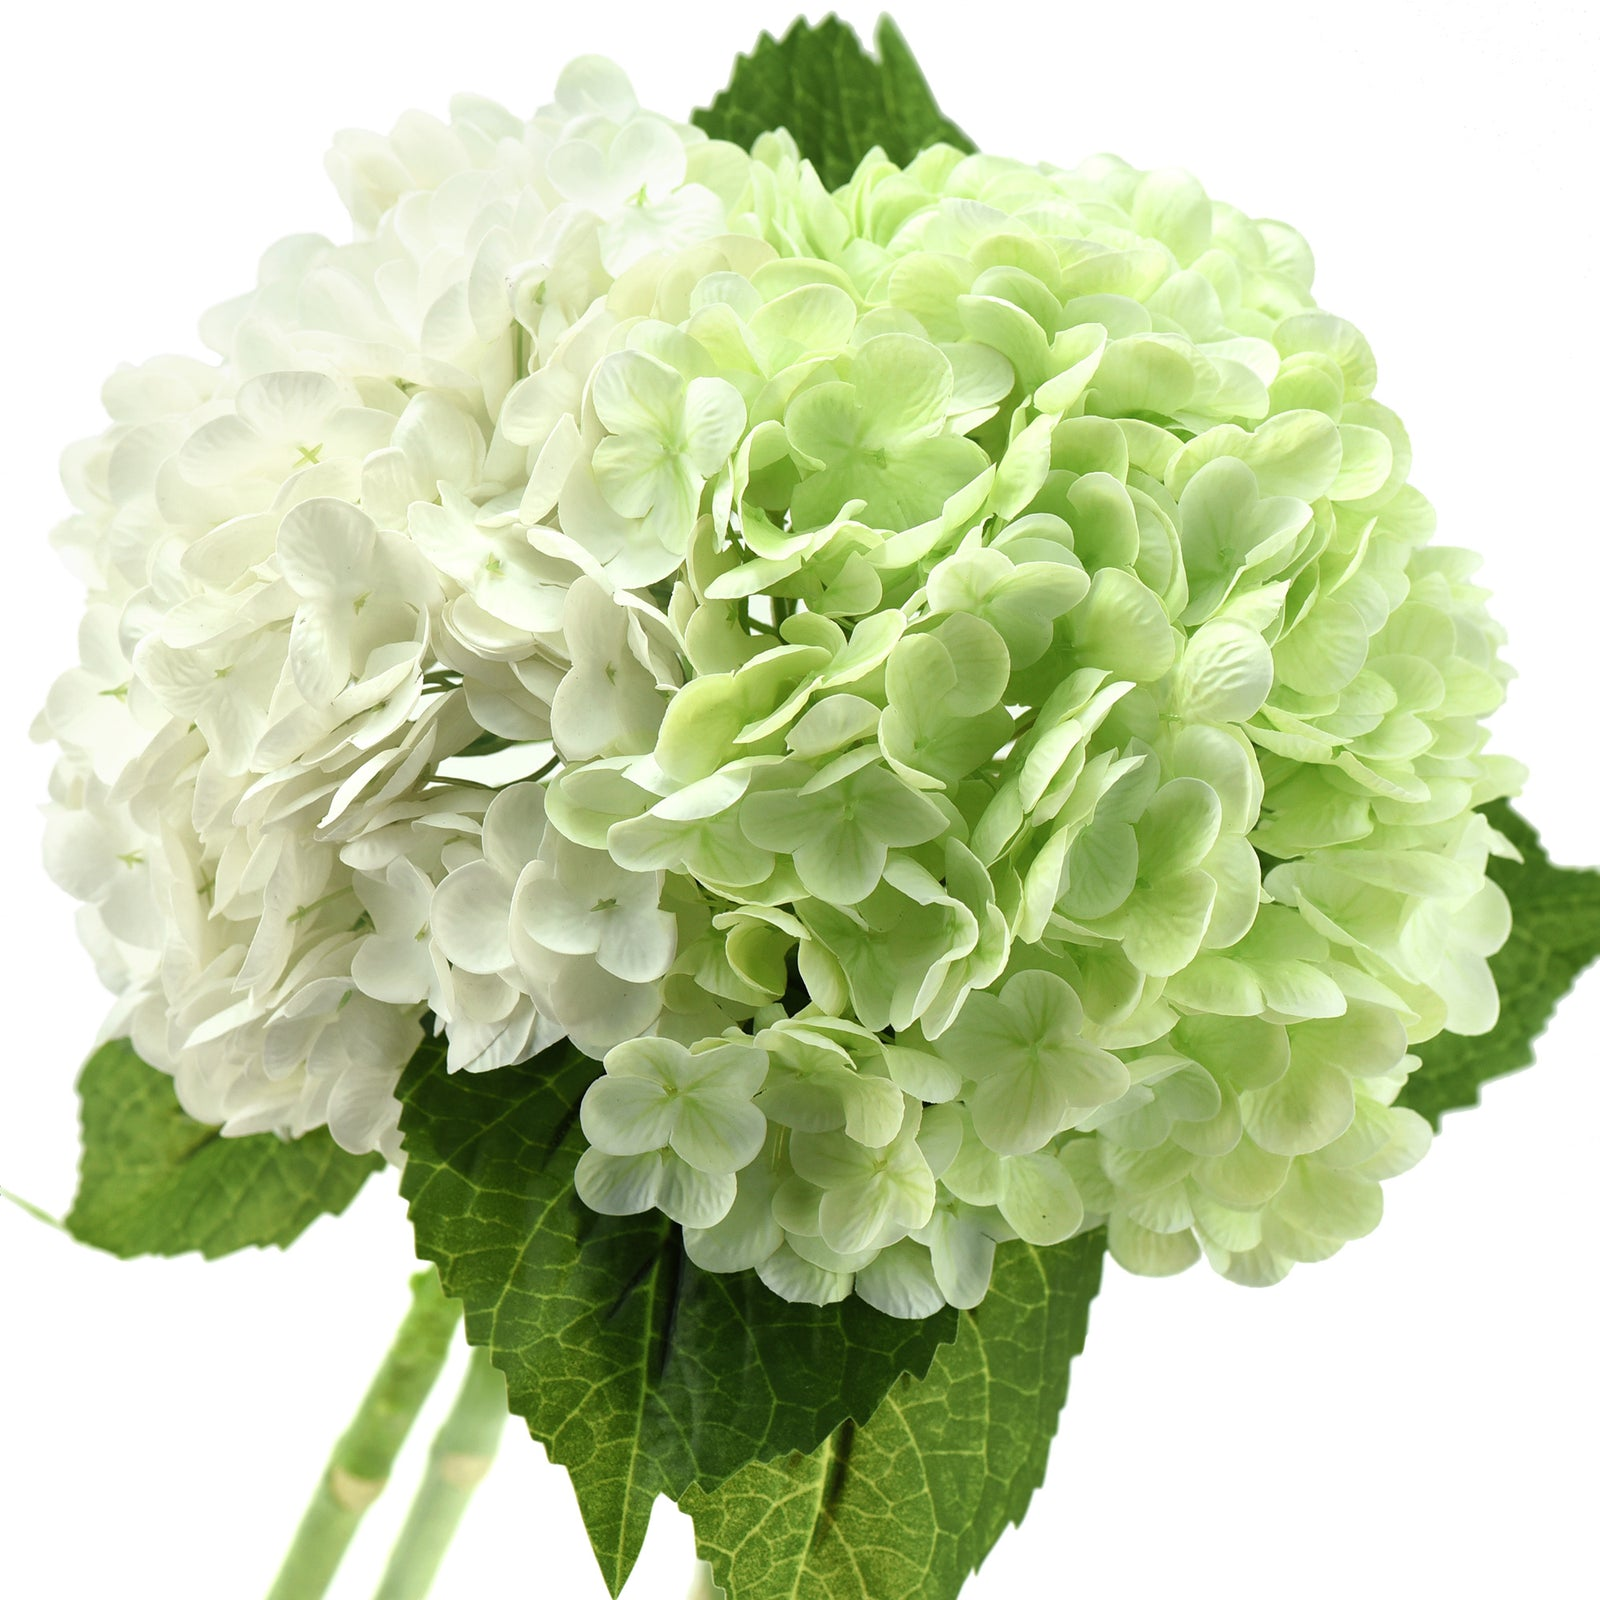 FiveSeasonStuff 2 Stems Real Touch Petals and Leaves Artificial Hydrangea Flowers Long Stem Floral Arrangement | for Wedding Bridal Party Home Décor DIY Floral Decoration (White | Pale Green)